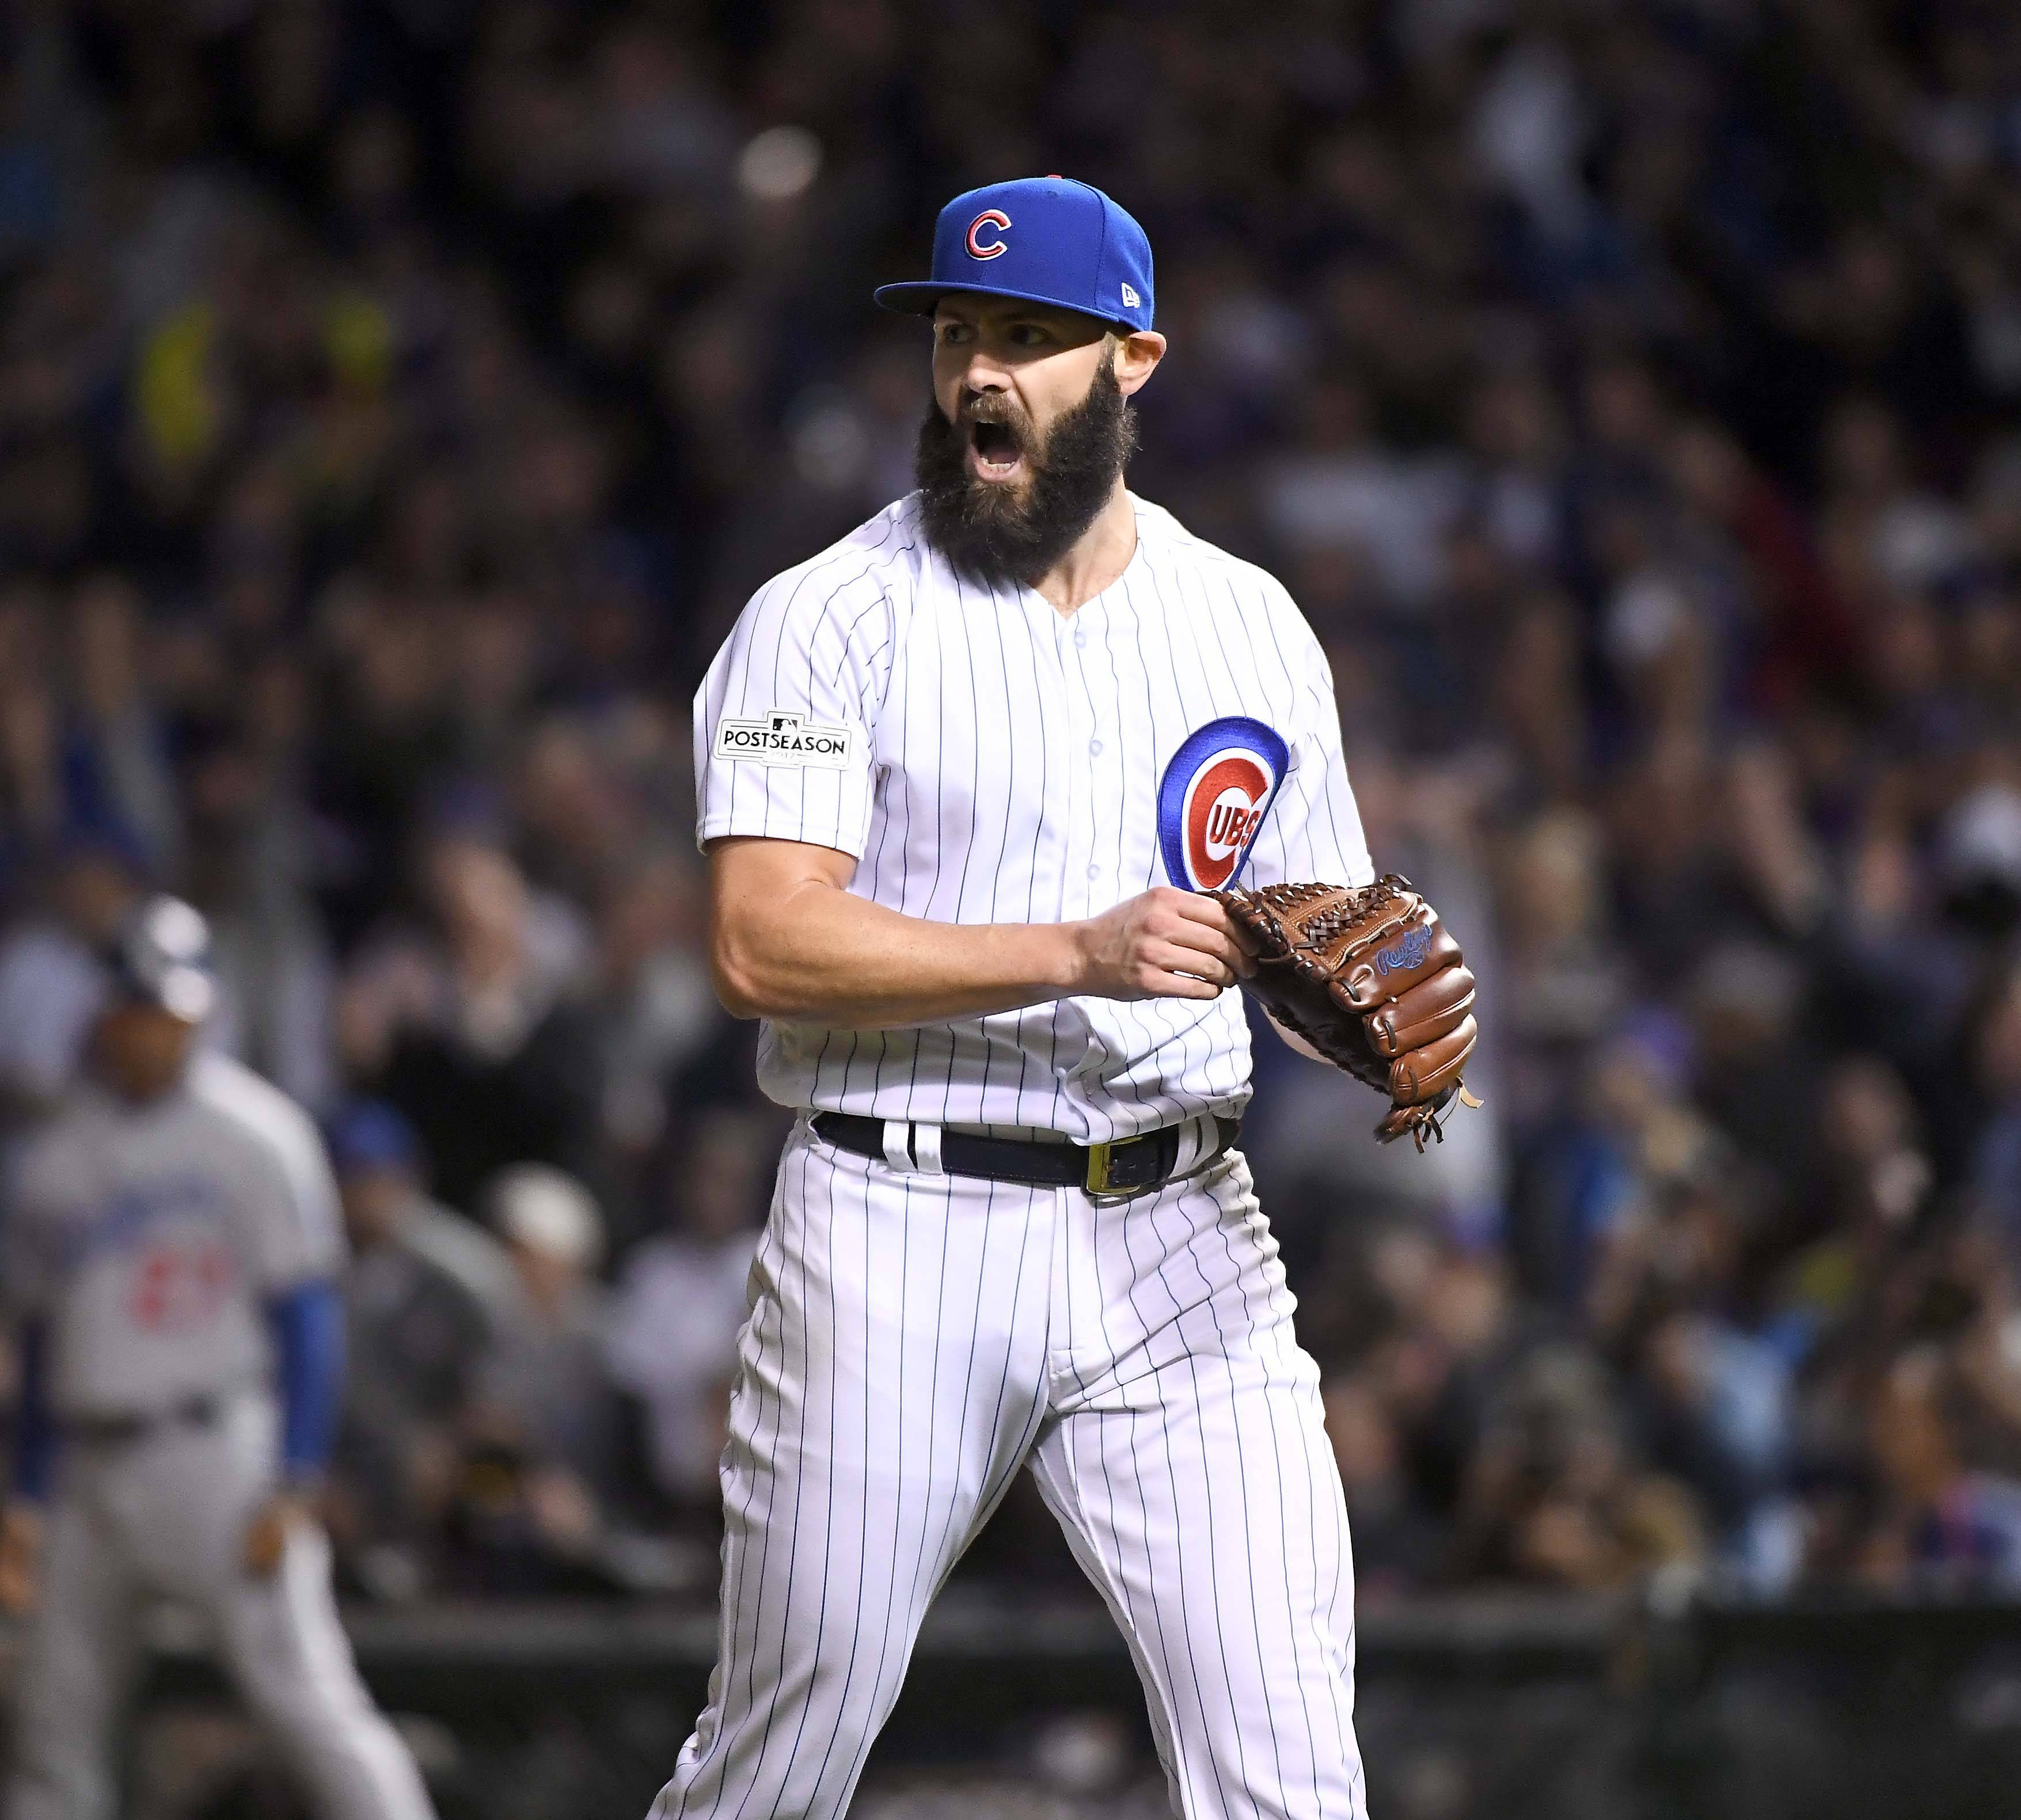 Chicago Cubs starting pitcher Jake Arrieta (49) reacts at end of the 6th inning during Game 4 of the National League Championship Series, Oct, 18 2017, at Wrigley Field in Chicago.